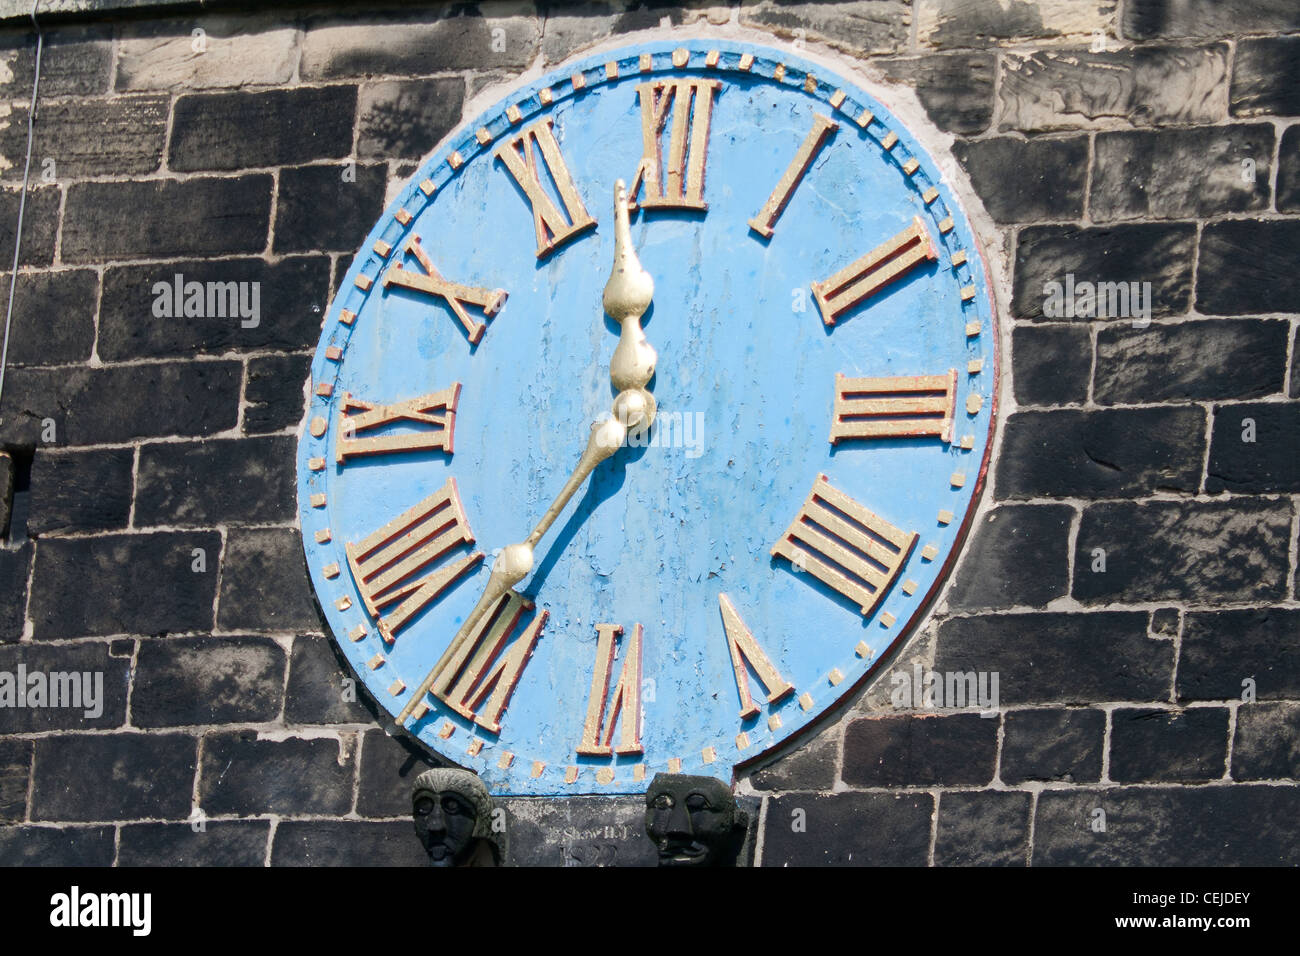 Church Clock With A Blue Face And Roman Numerals Stock